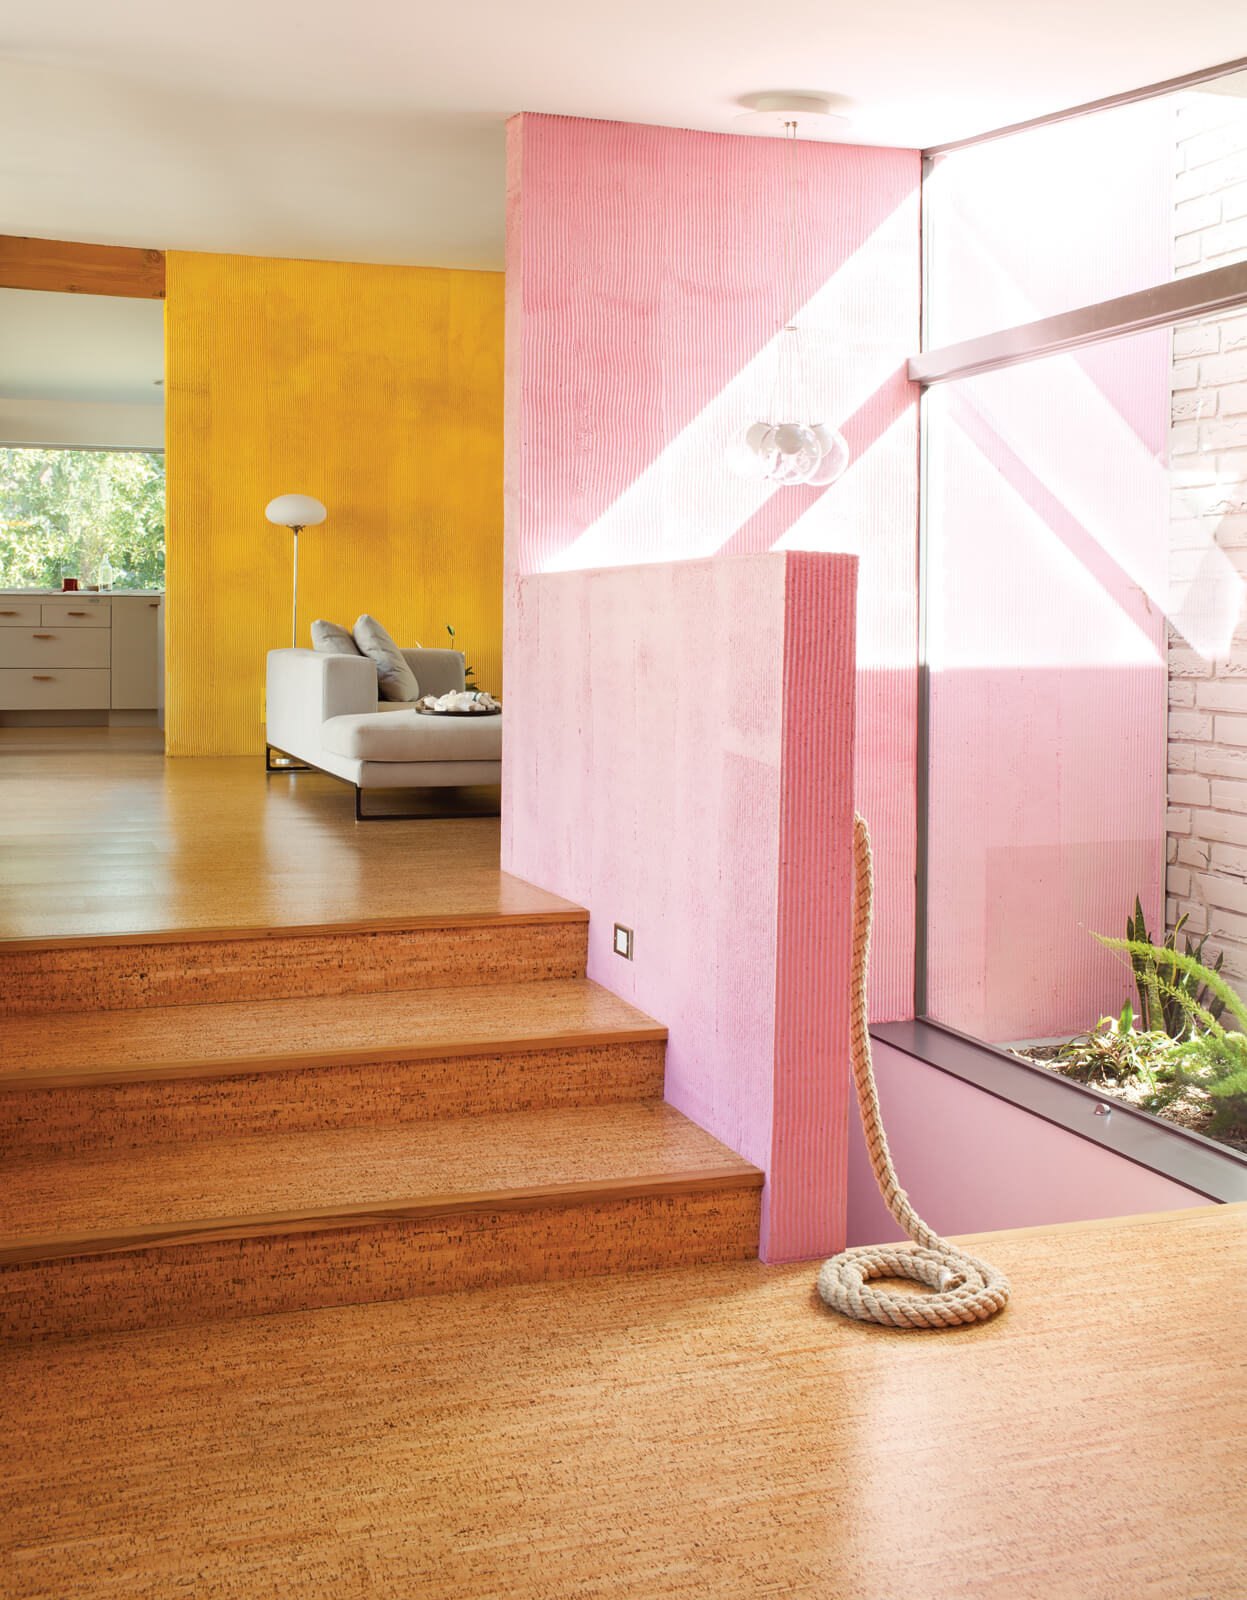 devis-purdy-house-stairs-living-room.jpg